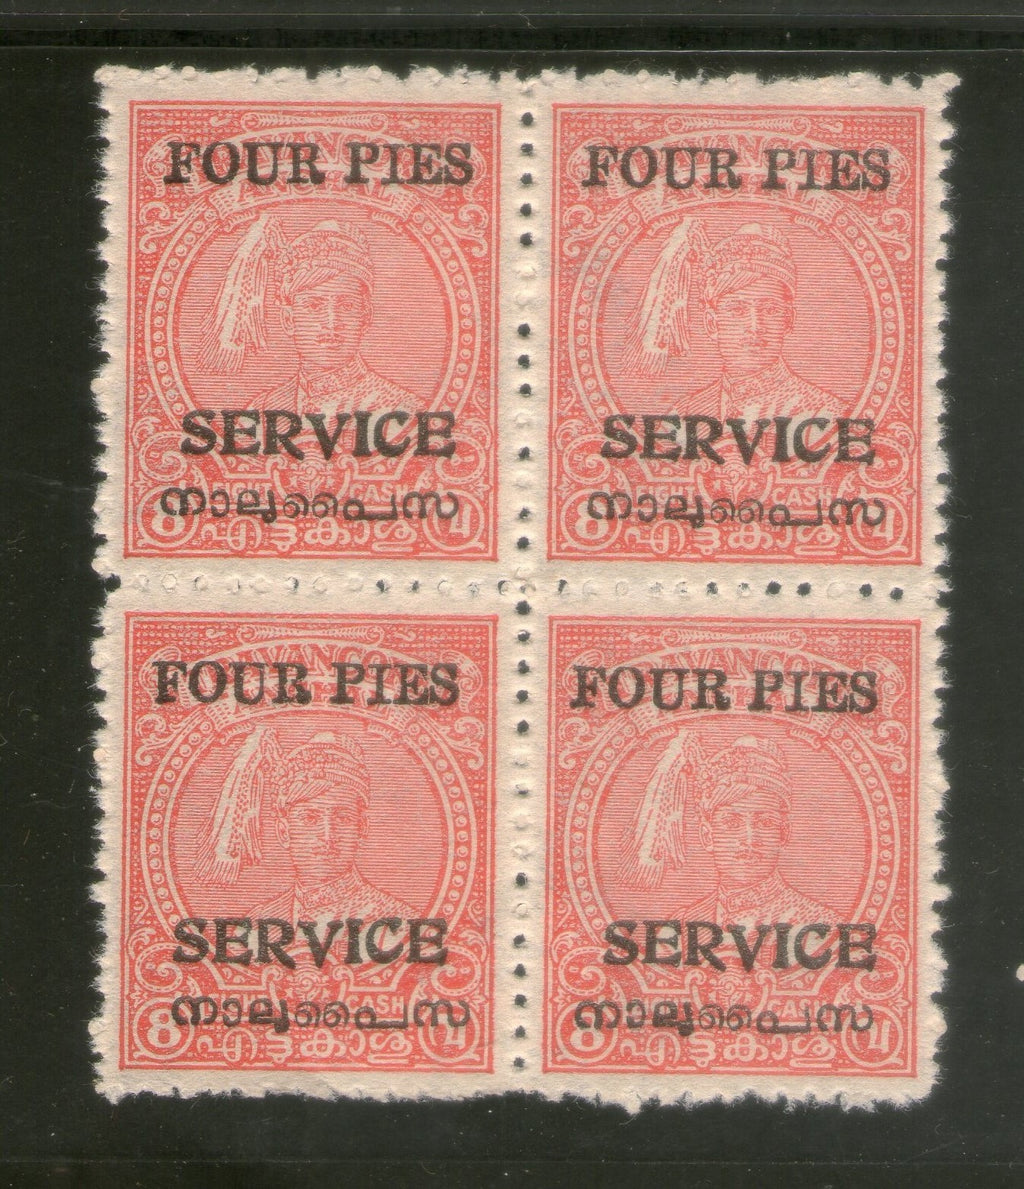 India Travancore Cochin State King 4ps O/P on 8ca SG O2 / Sc O2 Service BLK/4 Cat. £20 MNH - Phil India Stamps